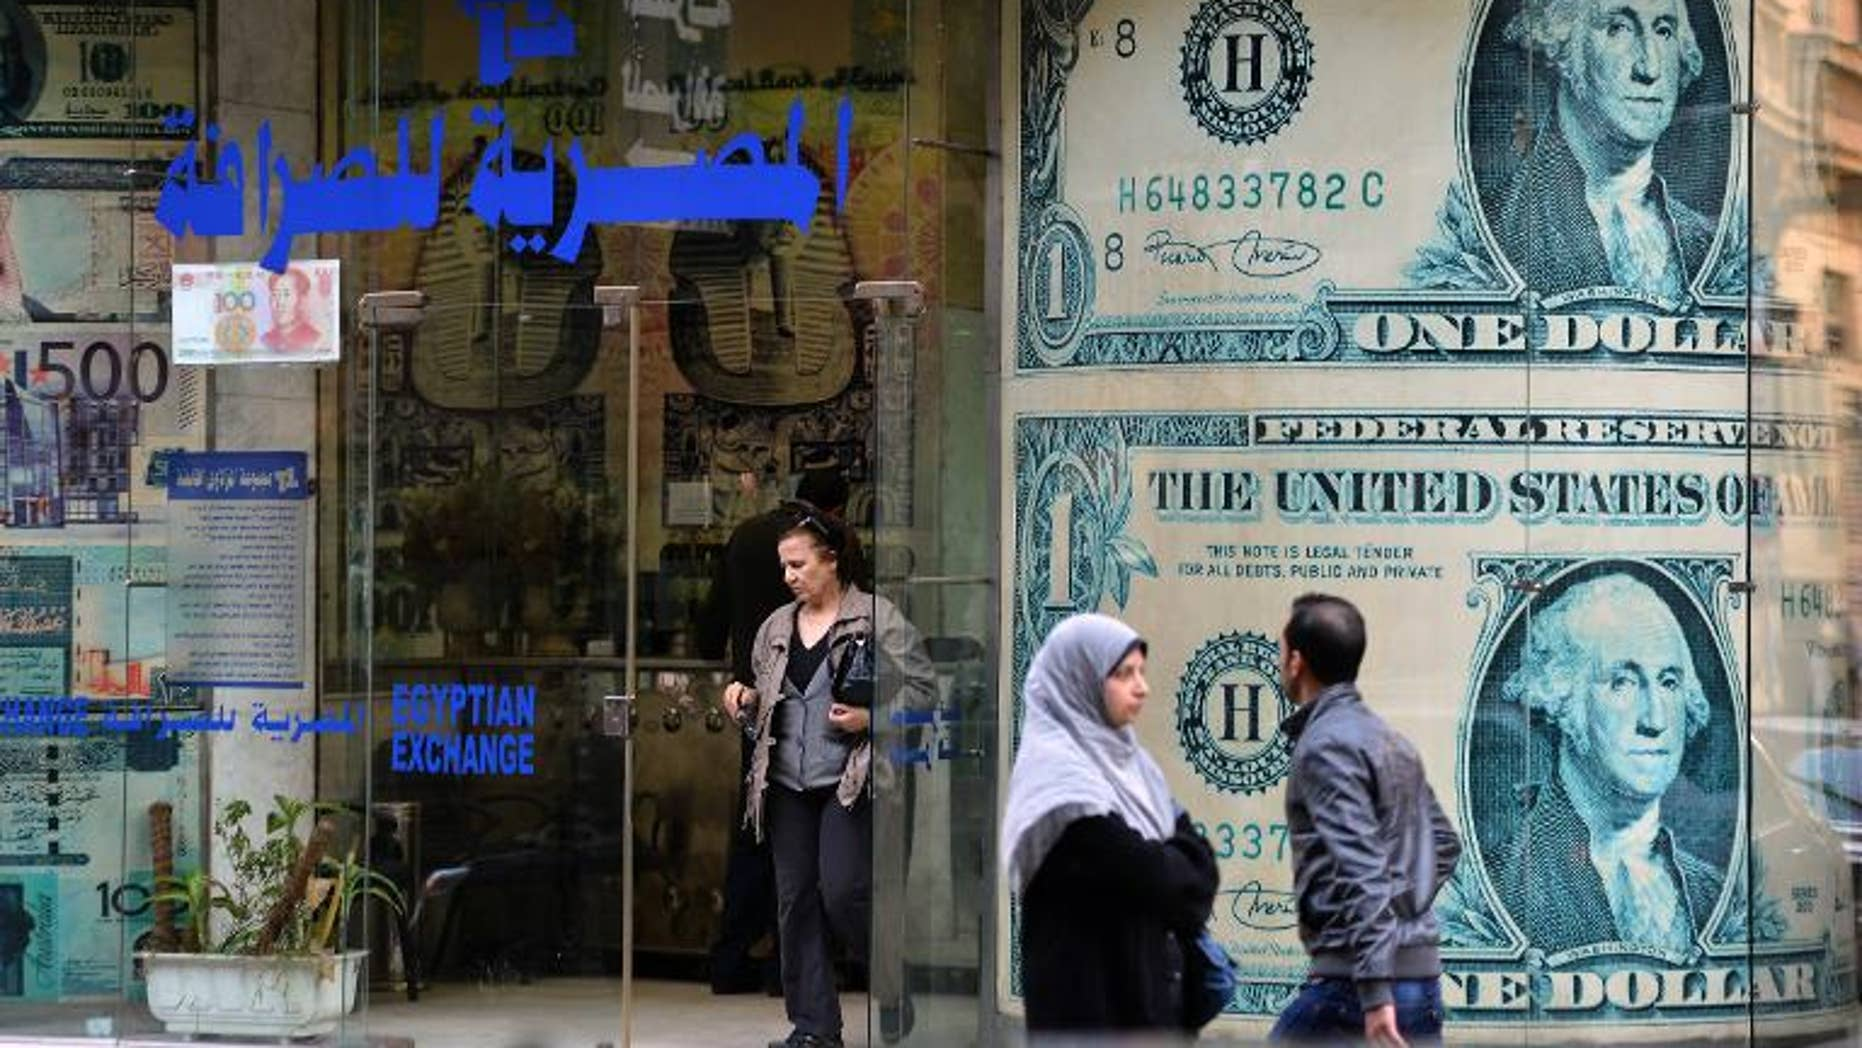 An Egyptian woman exits an foreign currency exchange shop in Cairo on January 6, 2013